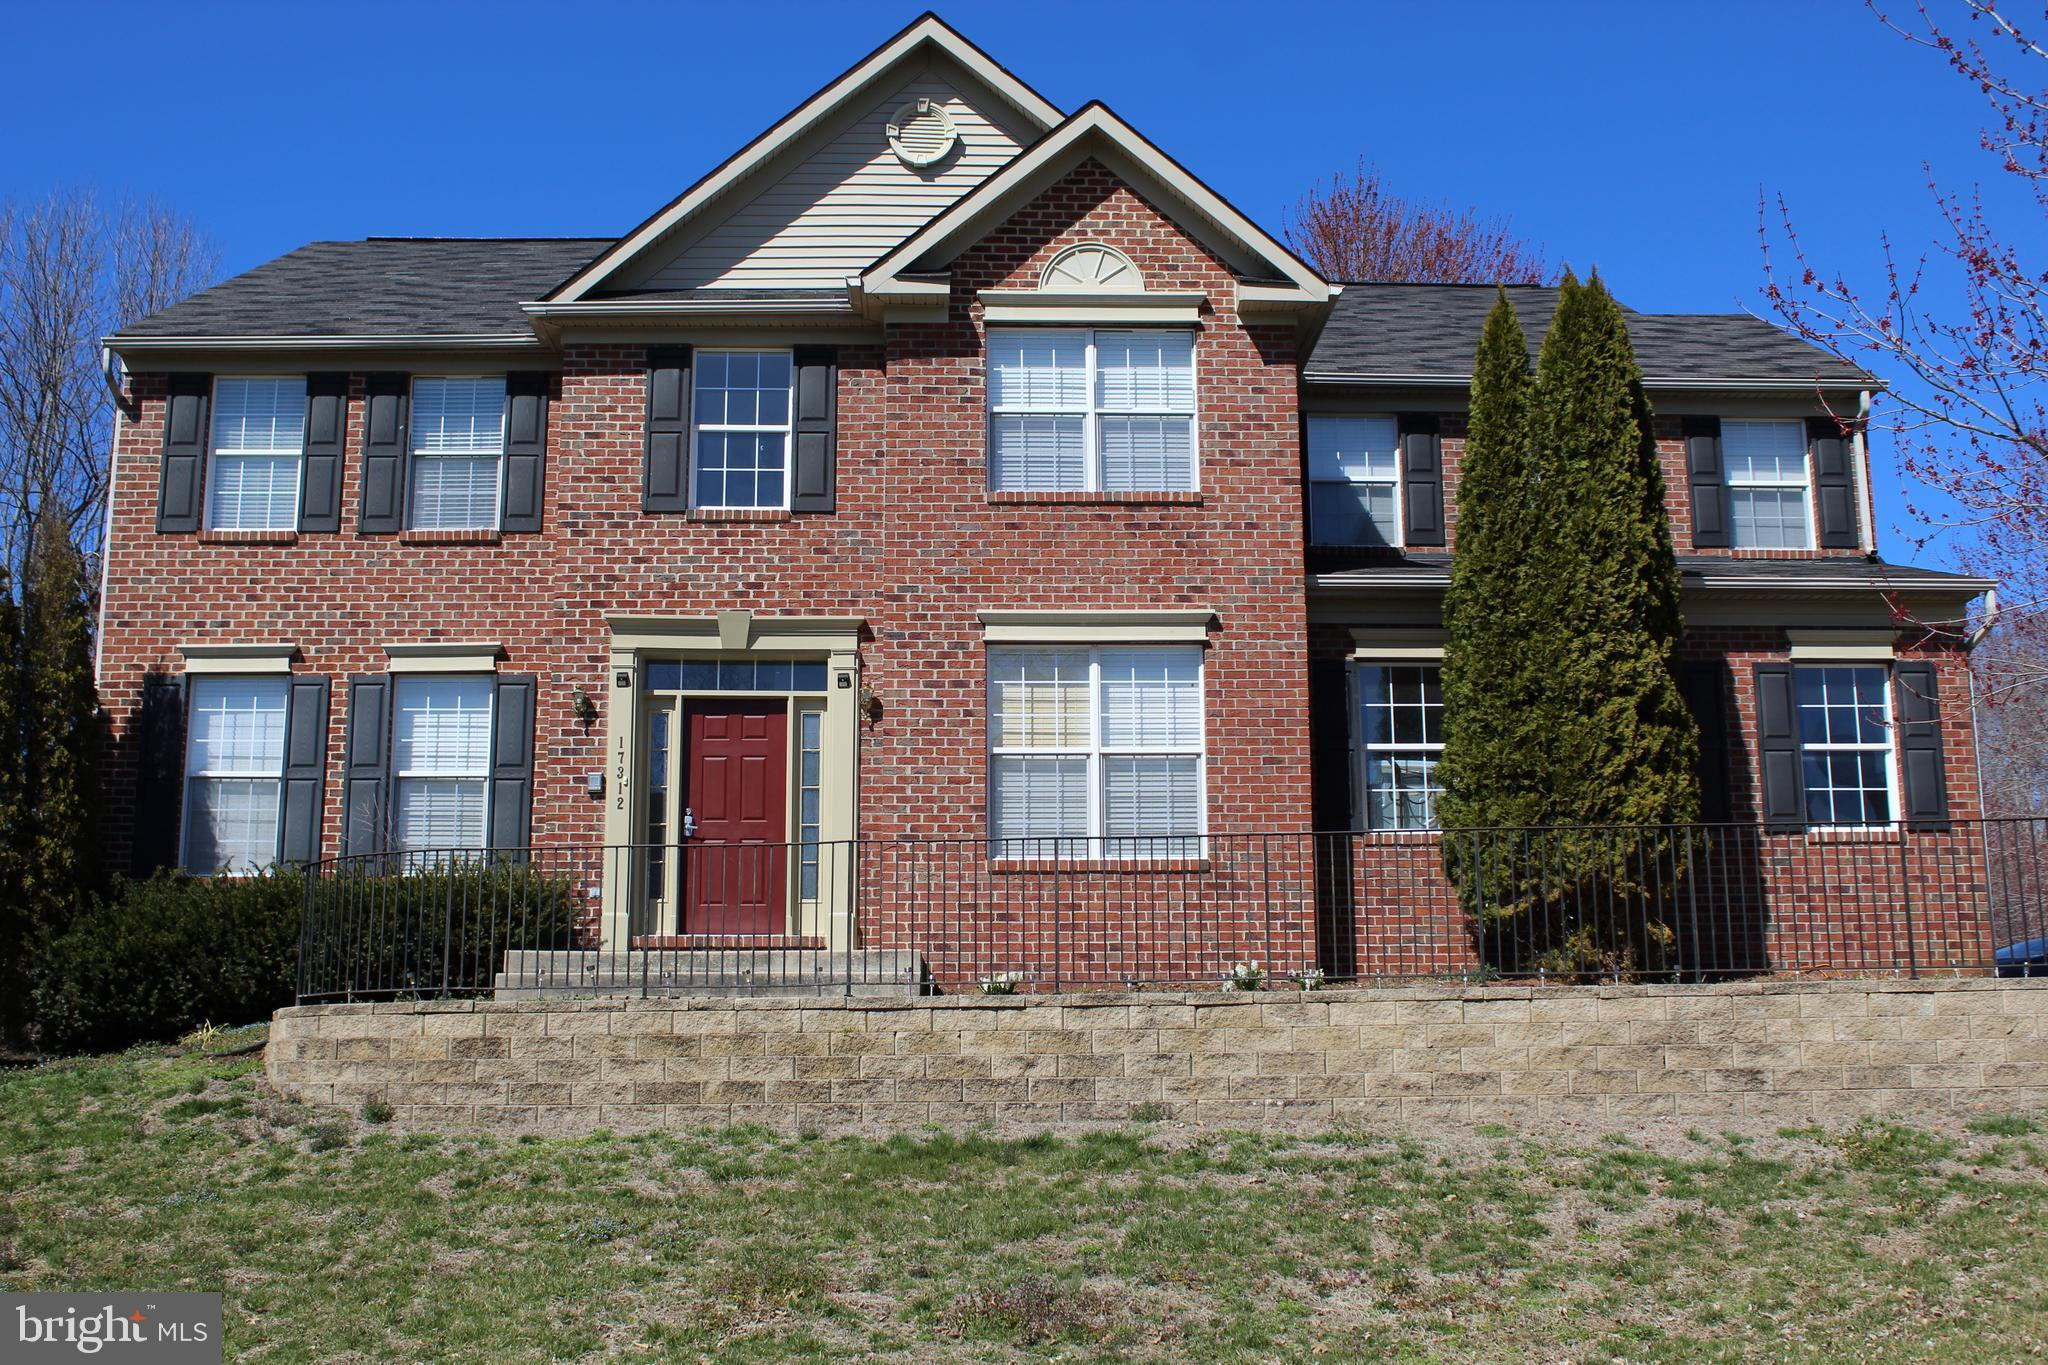 17312 RUSSET DRIVE, BOWIE, MD 20716